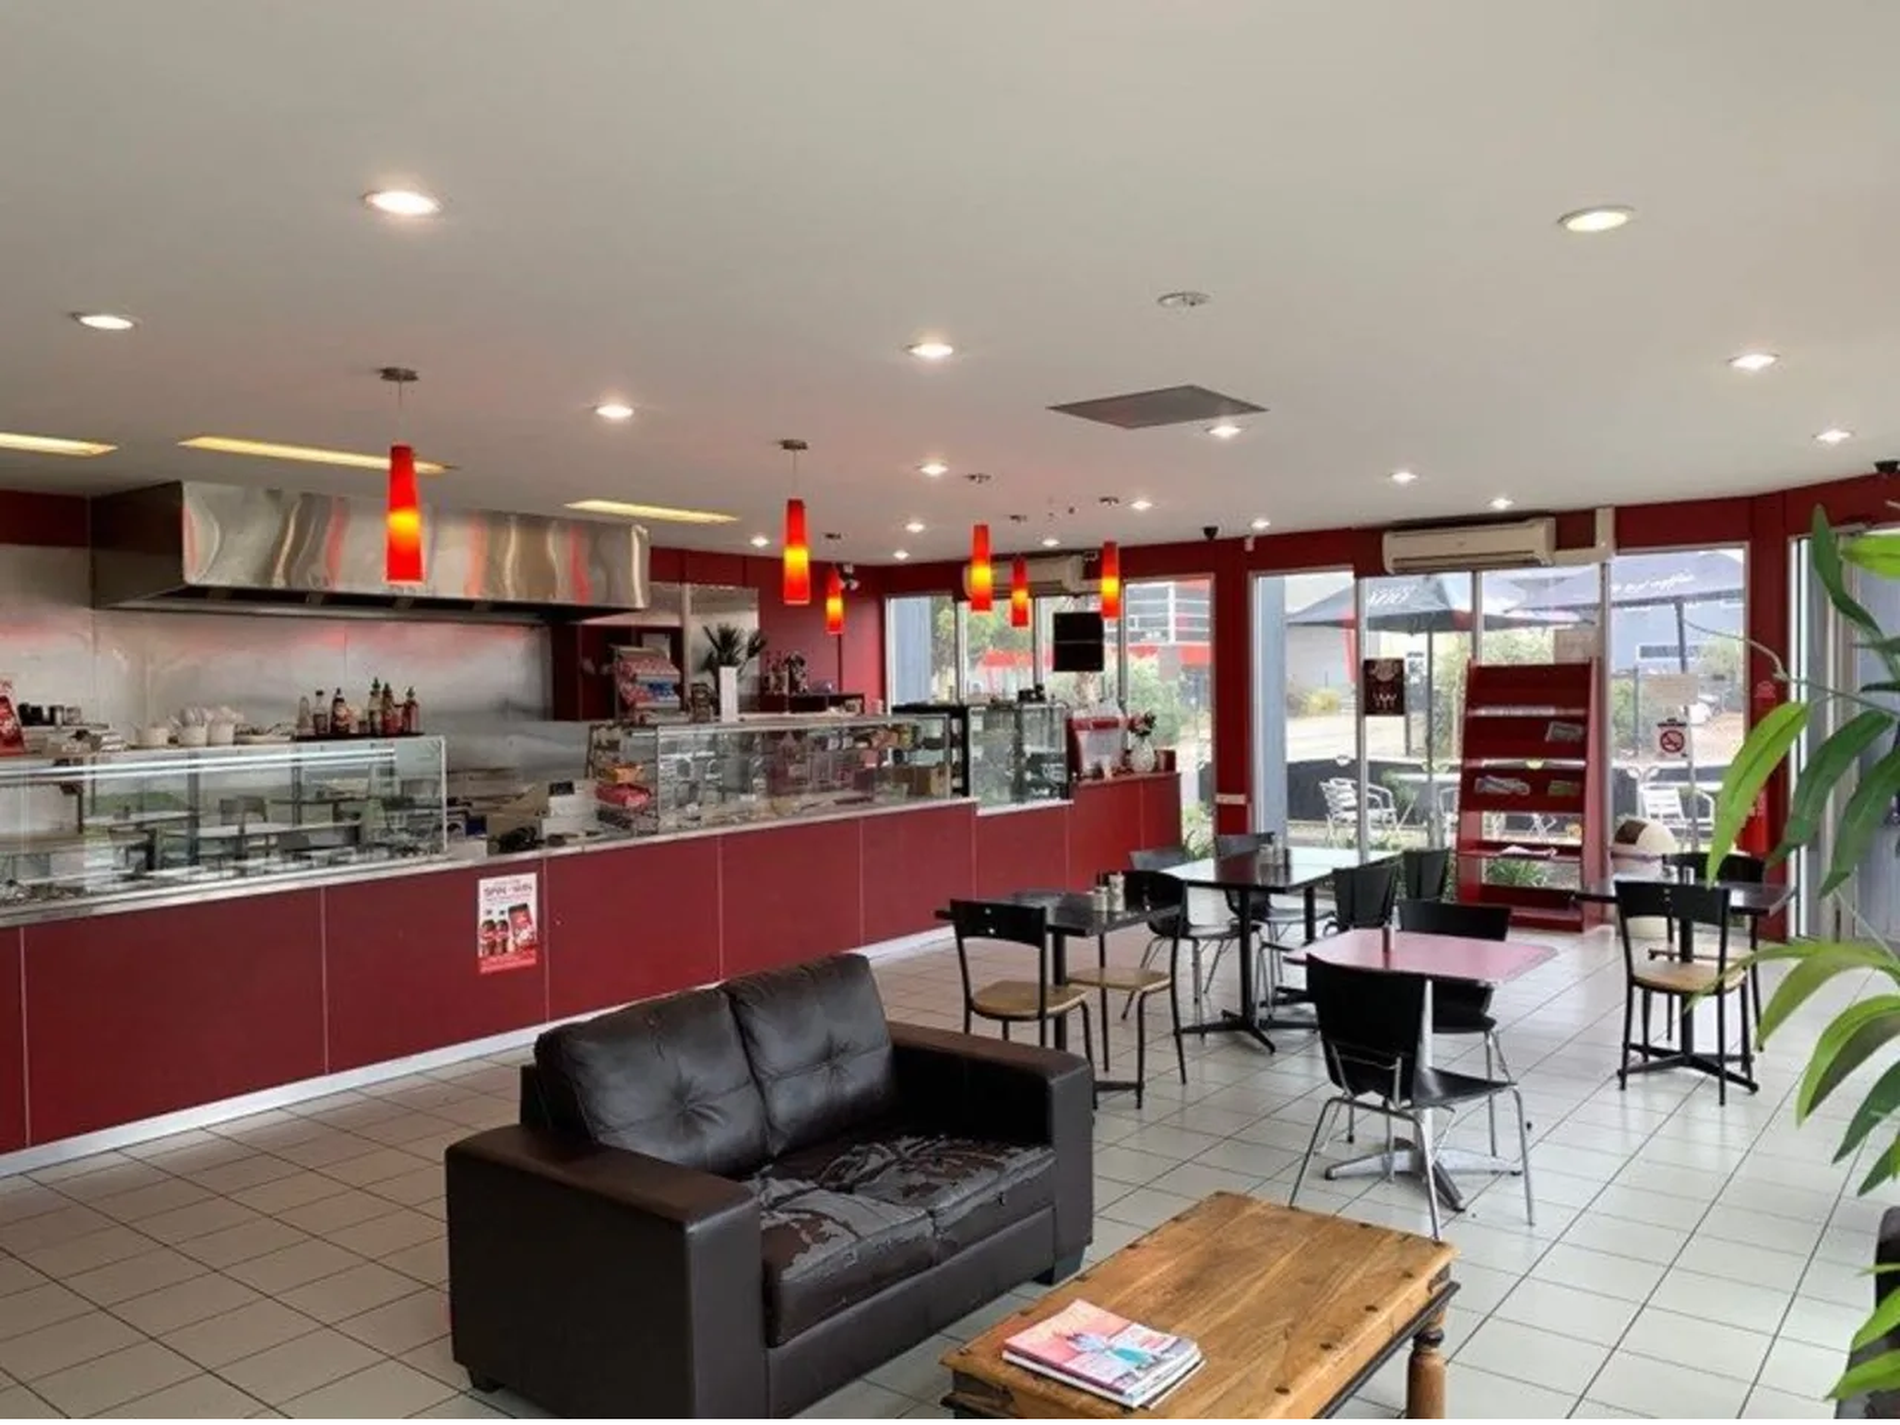 5 Day Industrial Cafe Business For Sale in the West